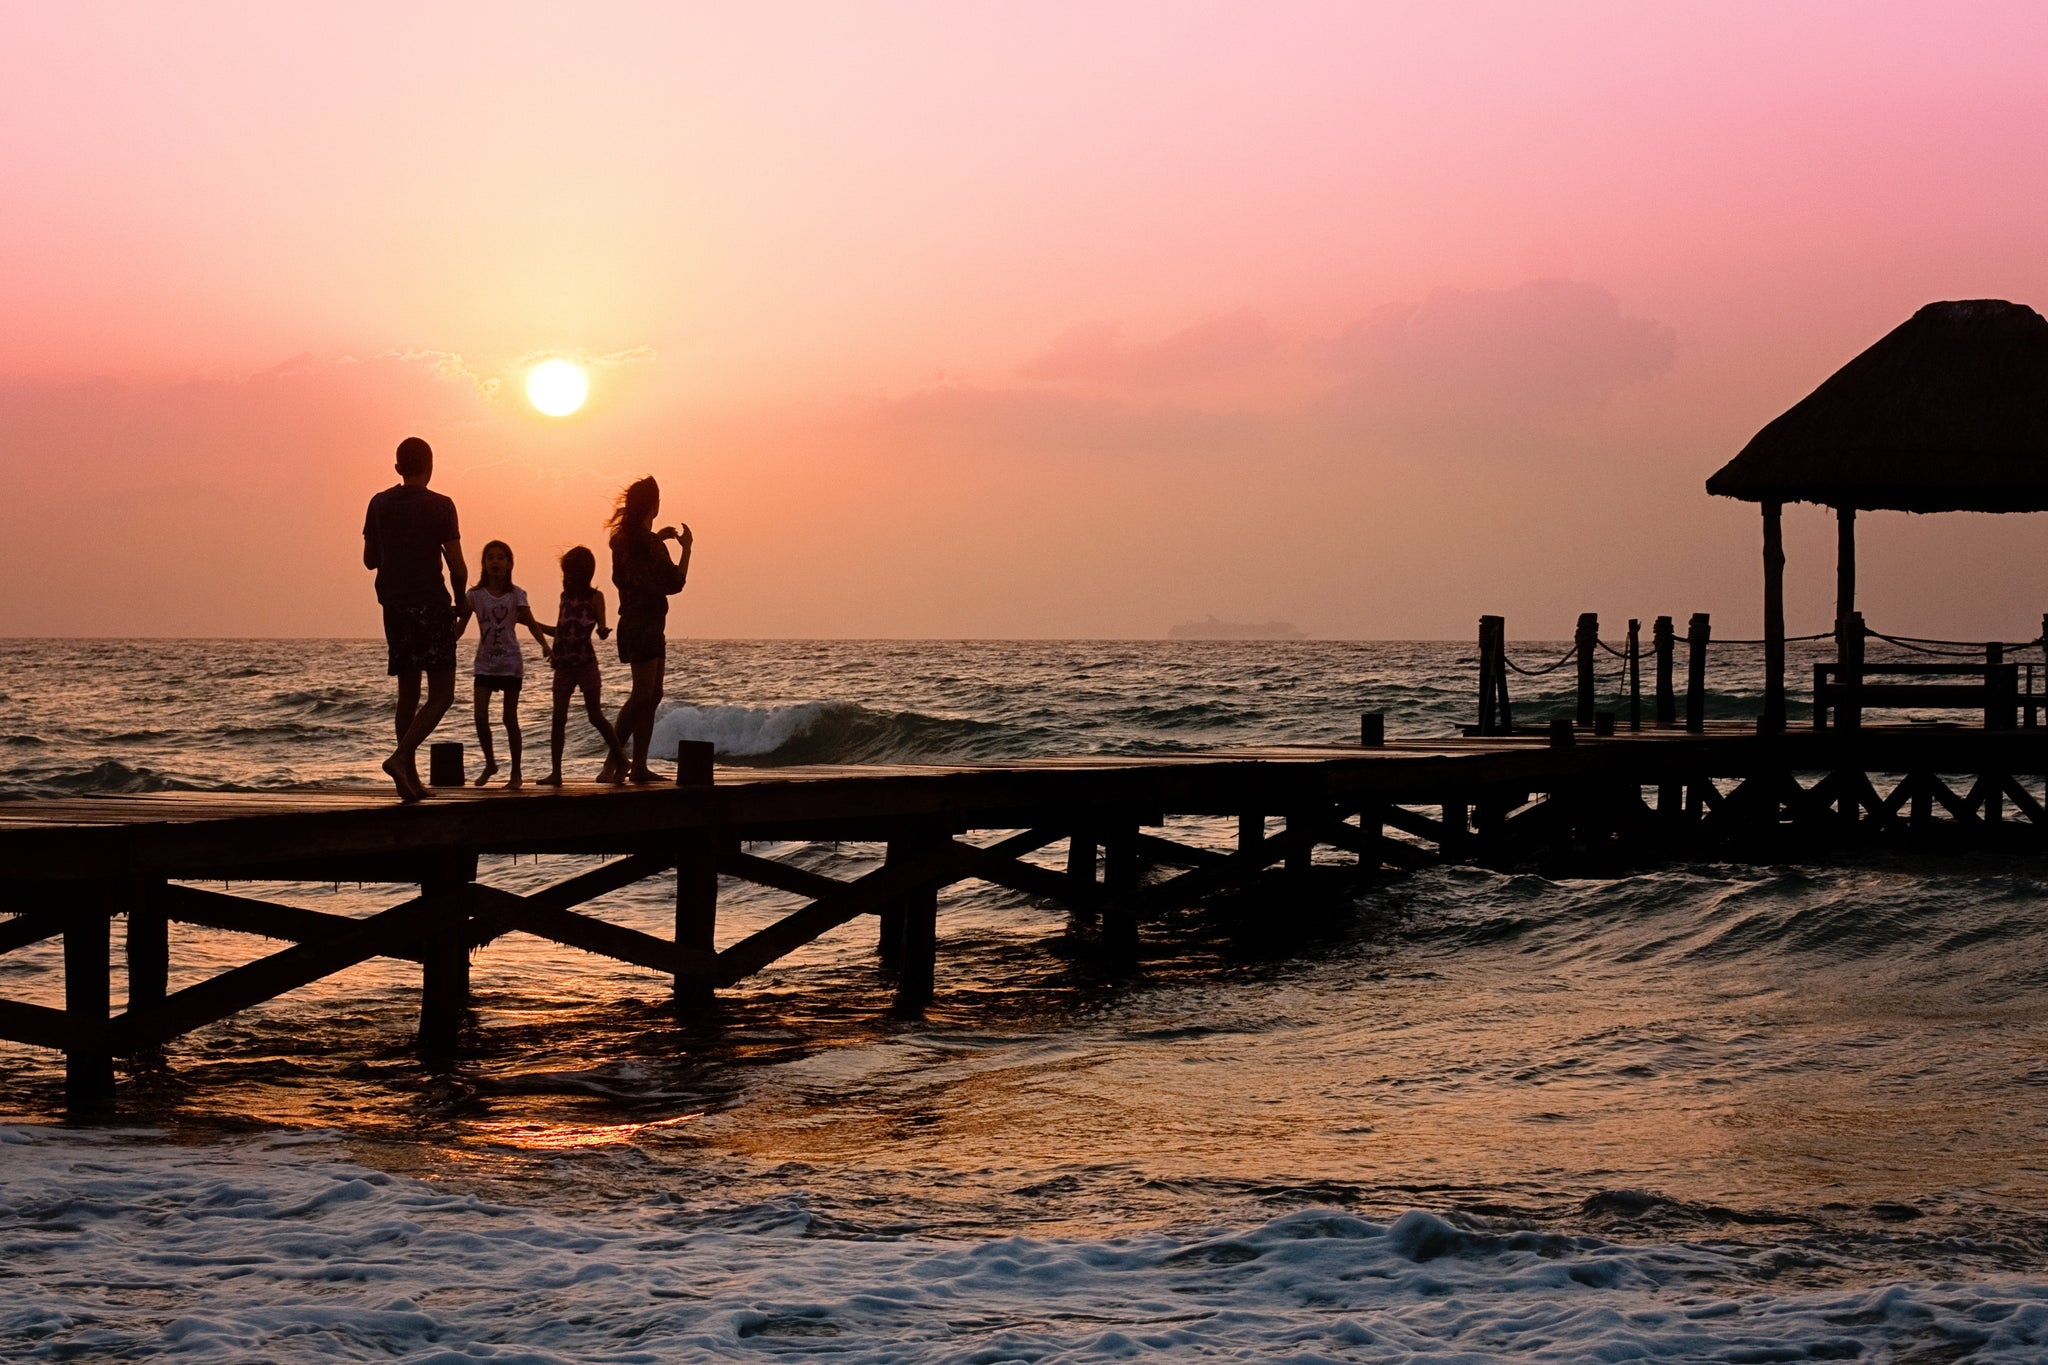 photographing silhouette of a family on a pier at sunset